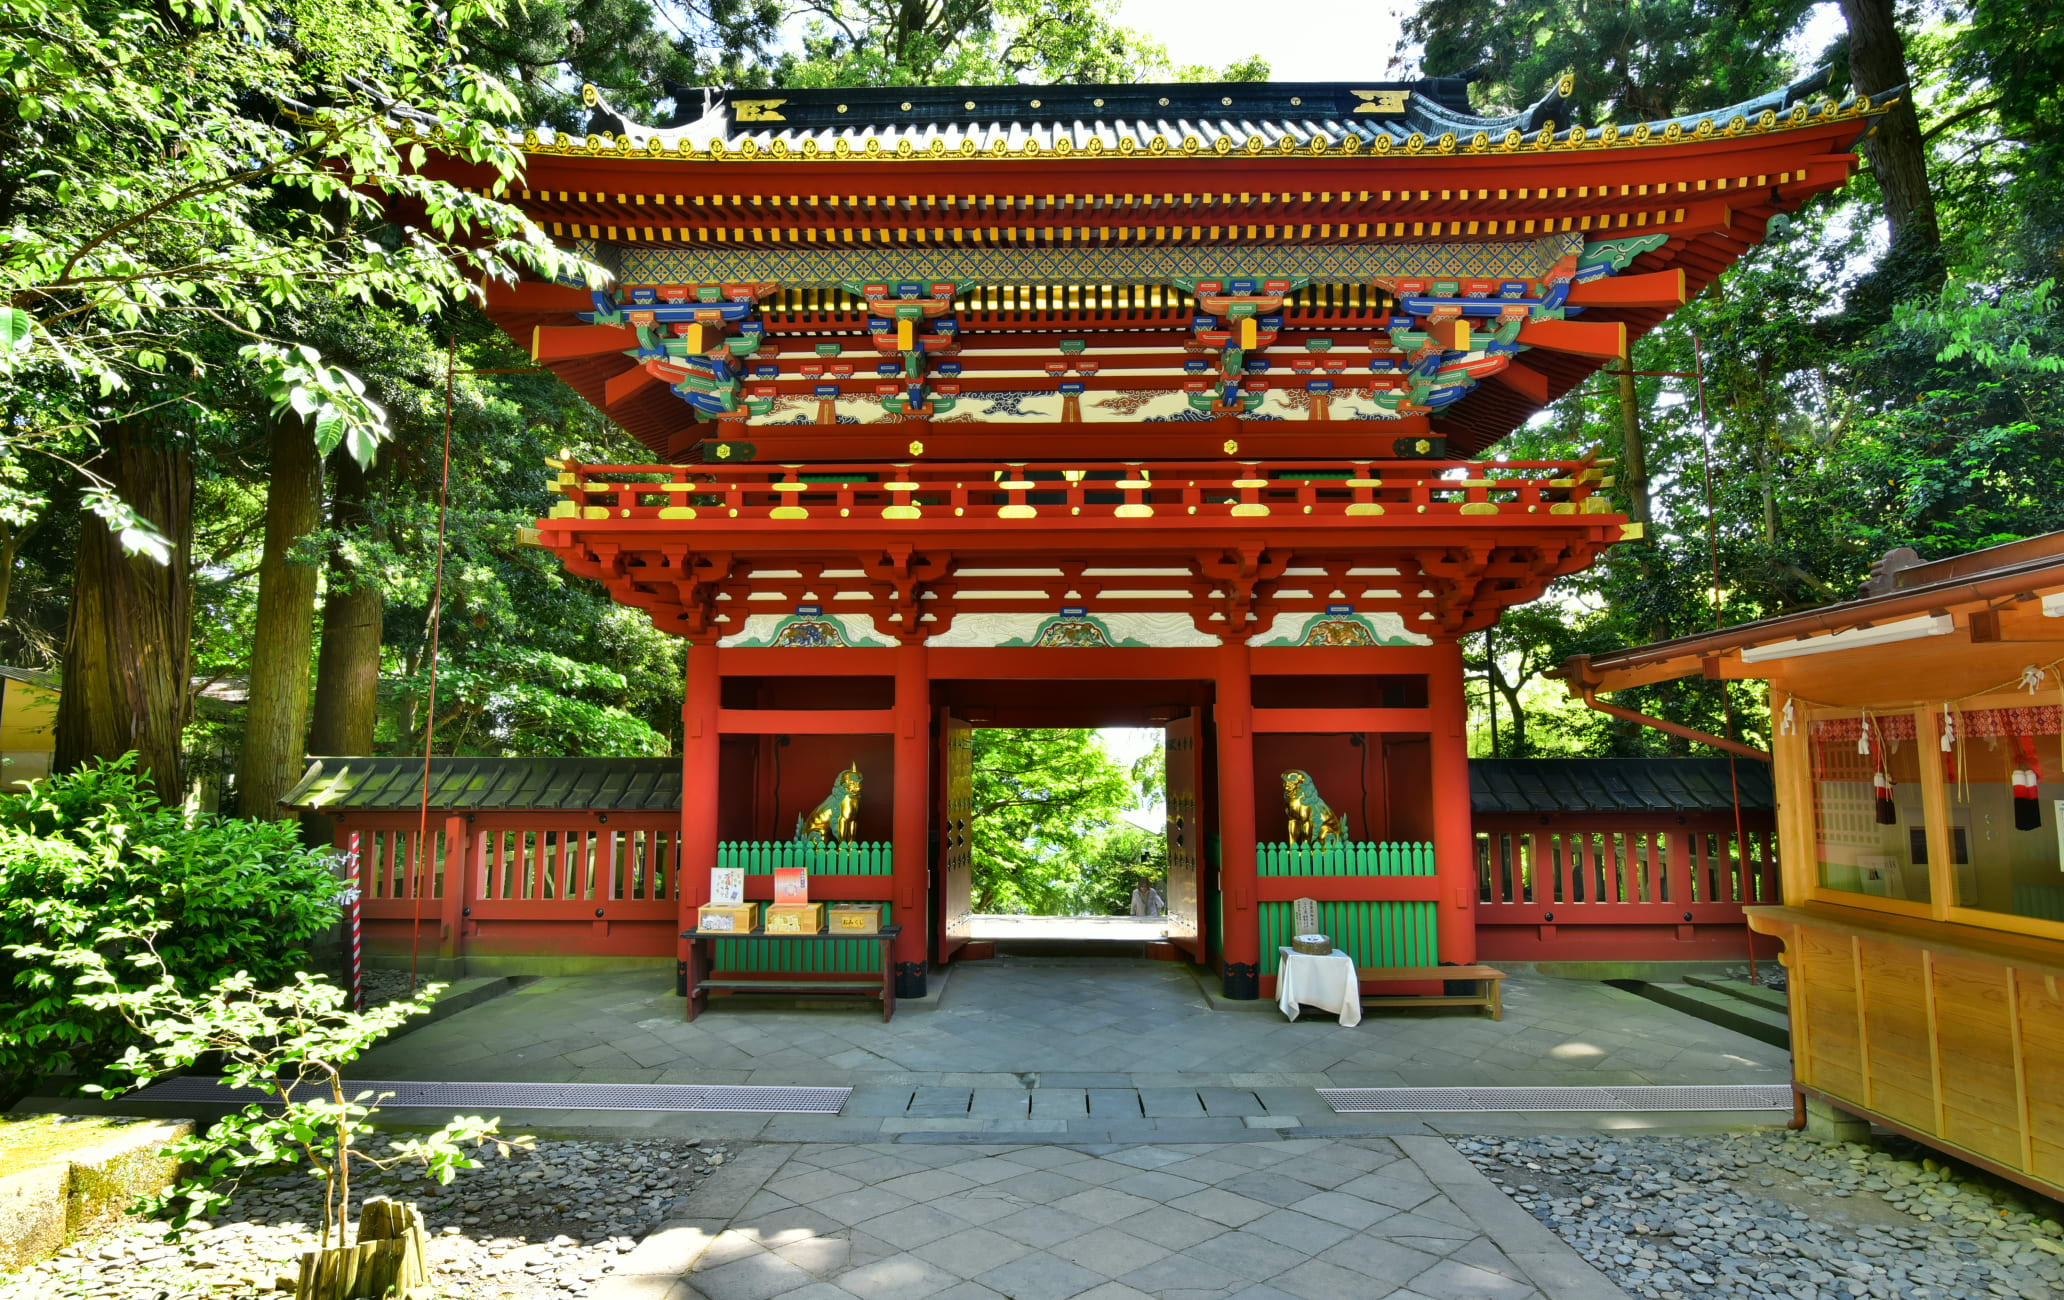 Kuno-zan Tosho-gu Shrine